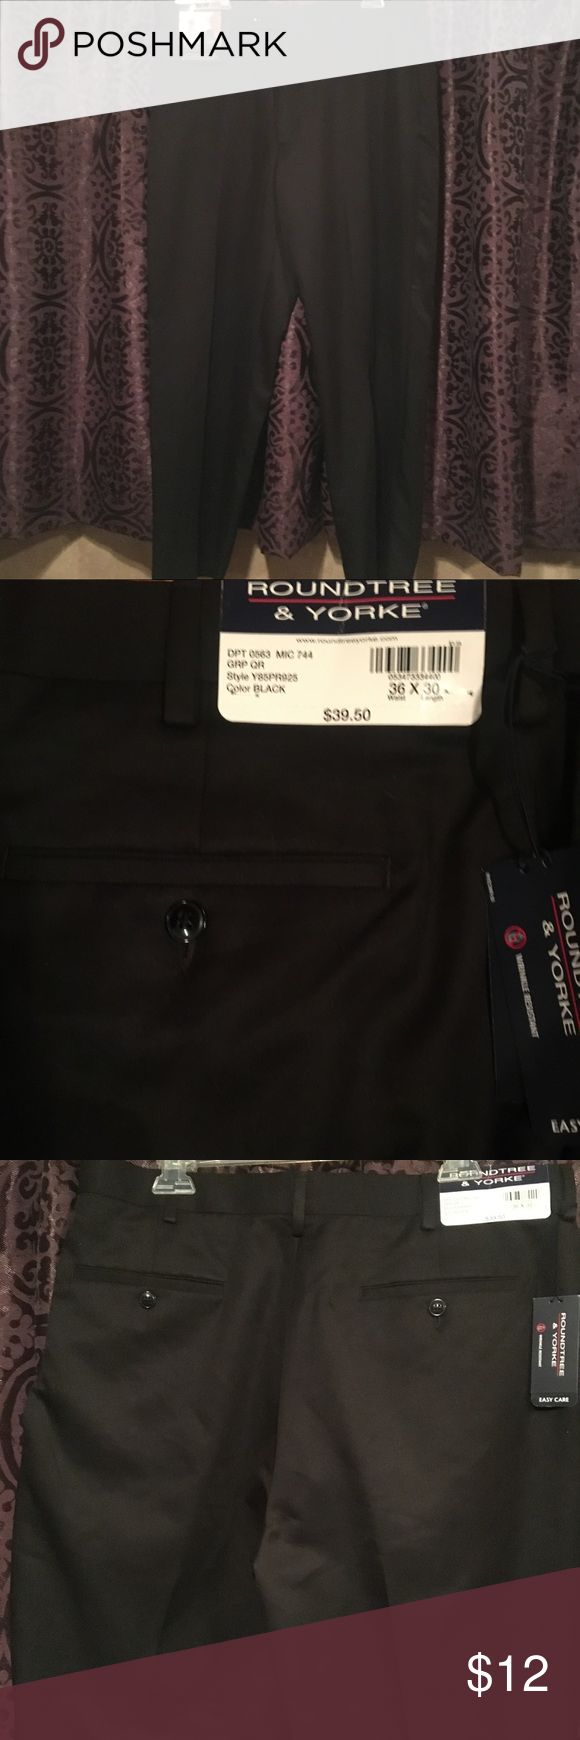 NWT Roundtree & Yorkee 36/30 Brand New Men's Rayon wrinkle free dress pants ! Front pockets and back flat designer pockets . Paid $40 for these at Dillard's but were too small. Perfect condition! No rips , snags , fading ! Very soft and comfortable! Roundtree & Yorke Pants Dress